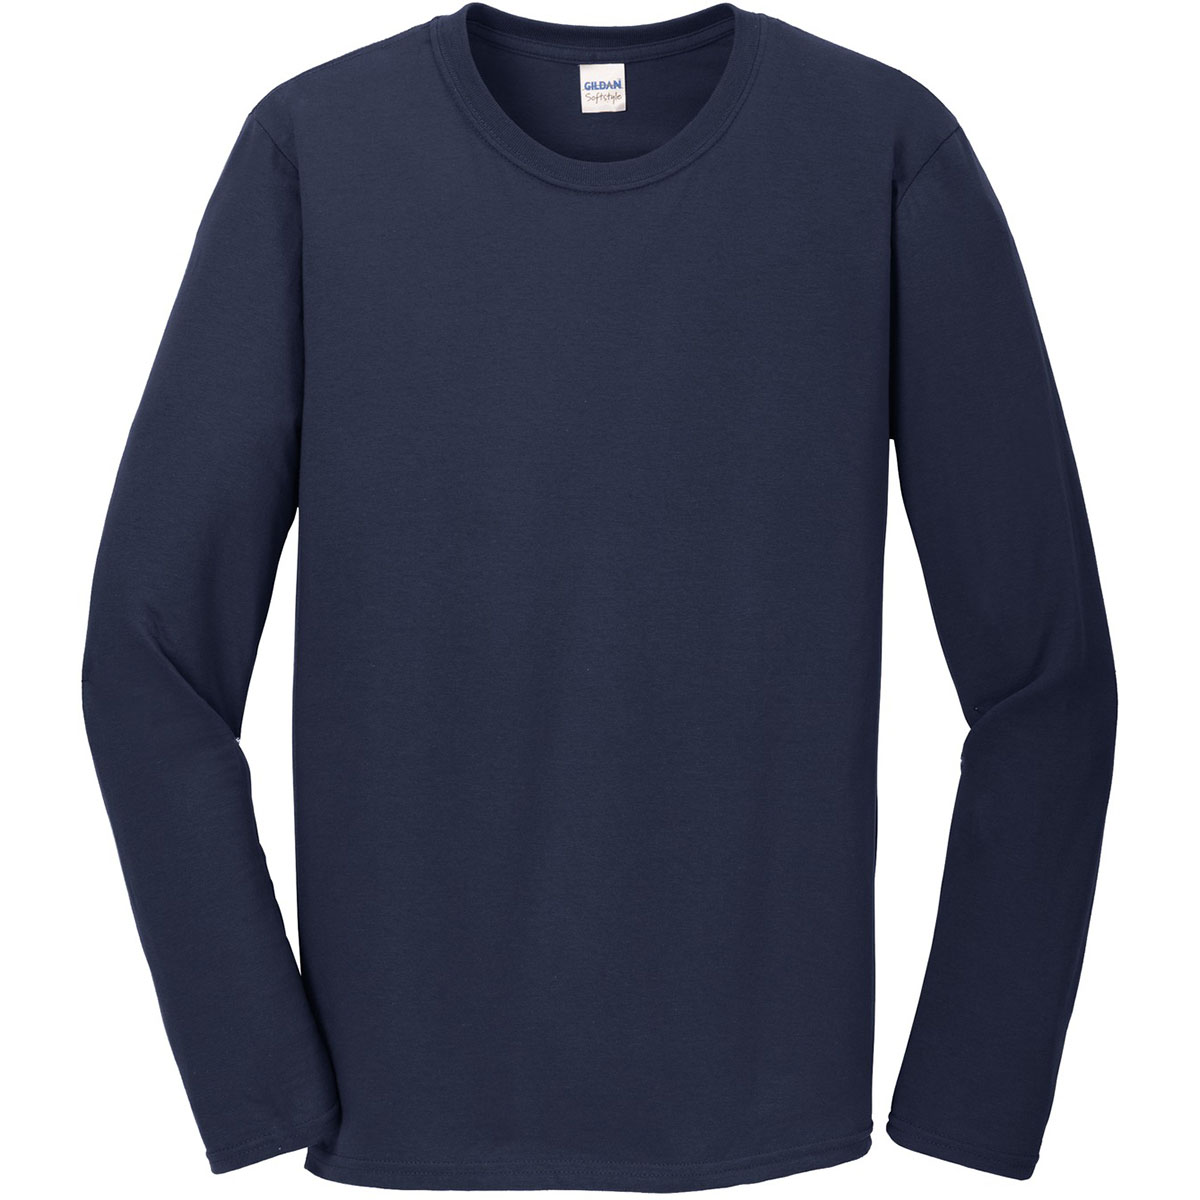 Gildan 64400 softstyle long sleeve t shirt navy for Gildan brand t shirt size chart